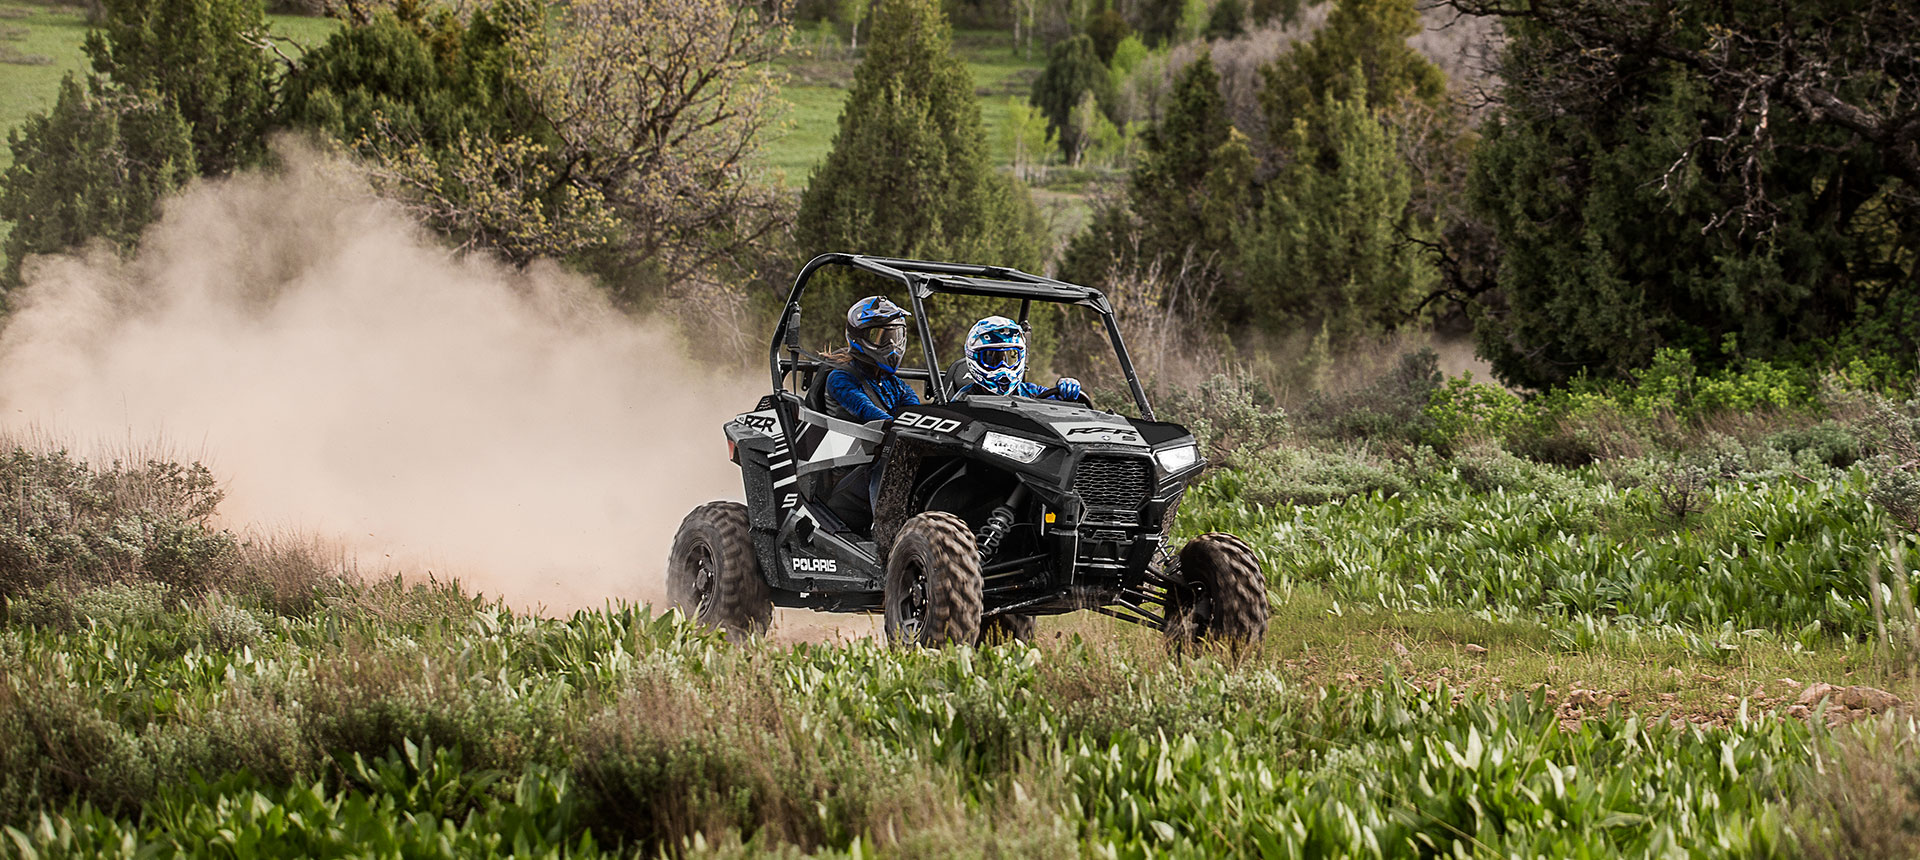 2019 Polaris RZR S 900 in Adams, Massachusetts - Photo 5